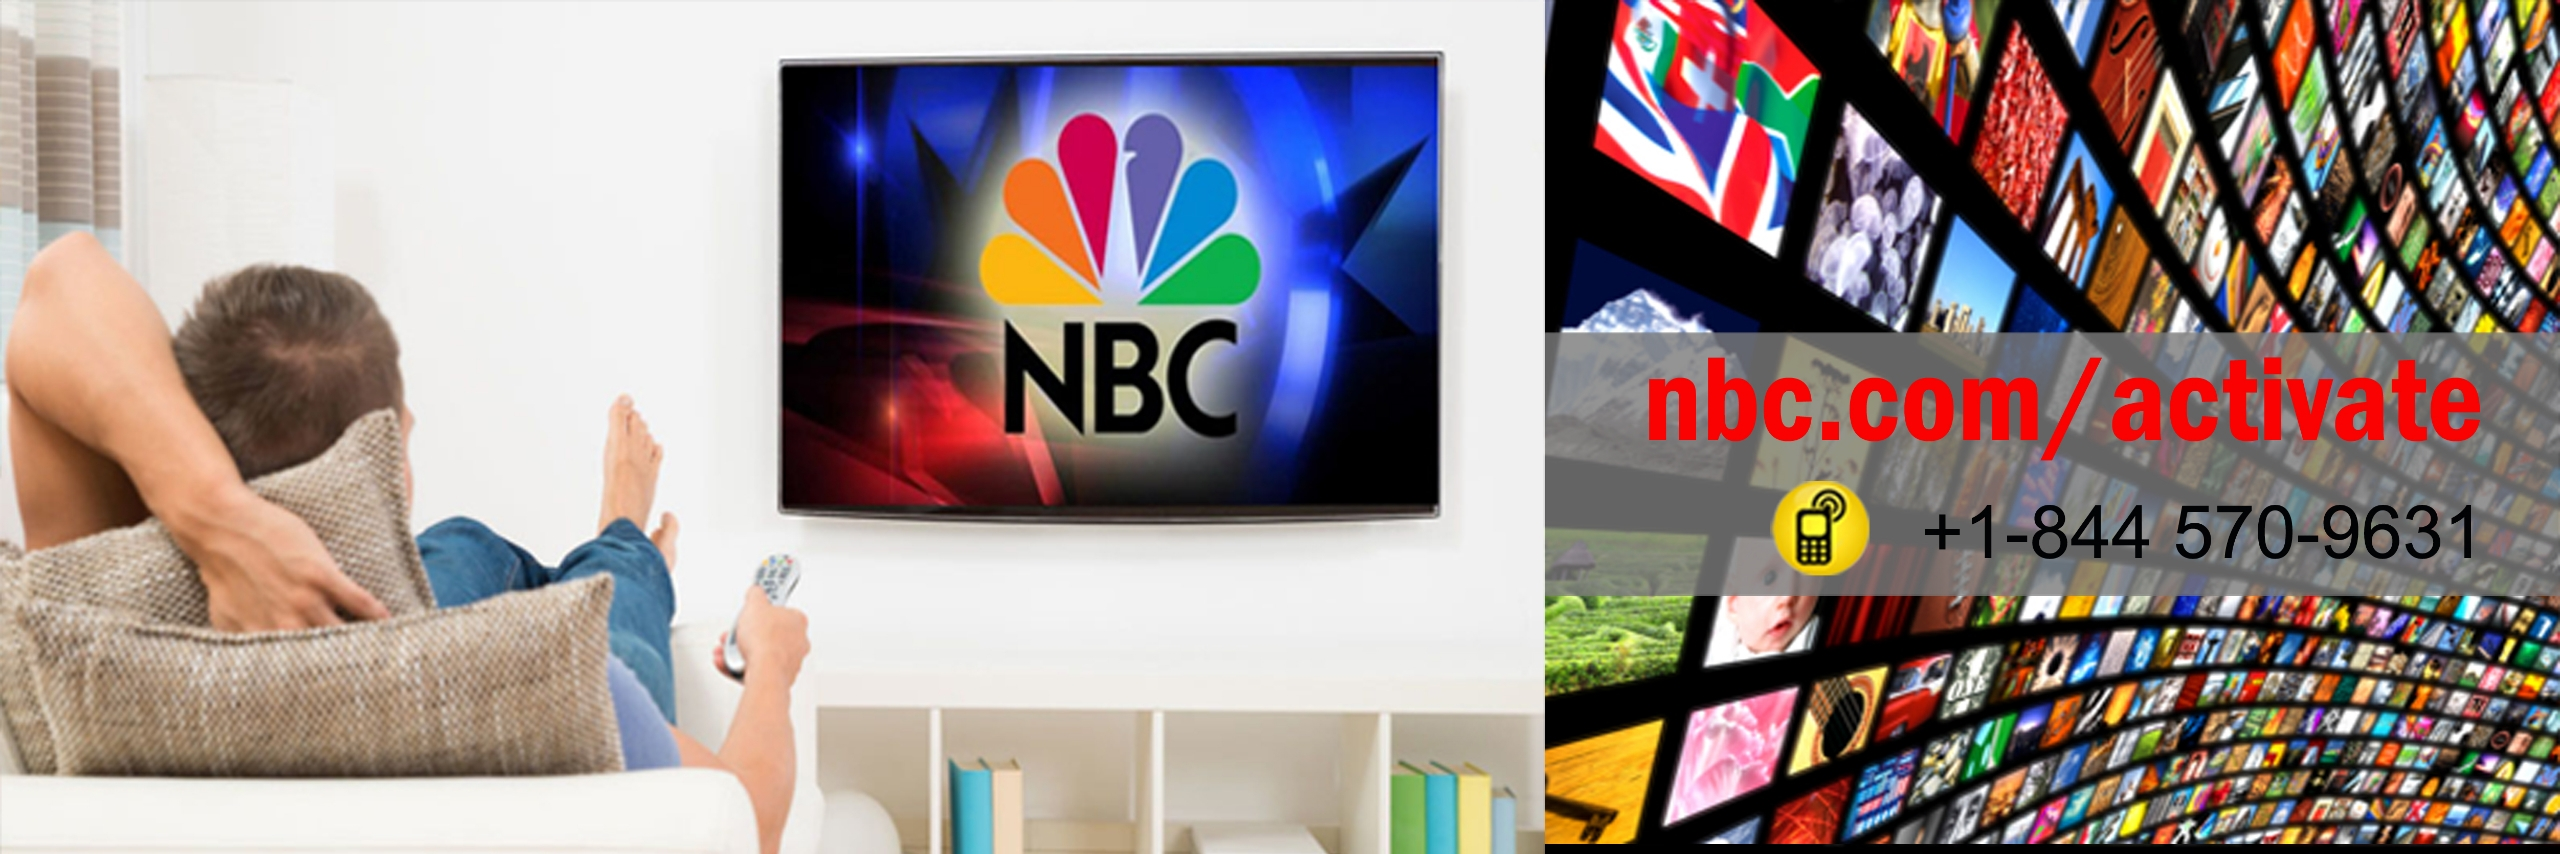 (@nbcactivate26) Cover Image